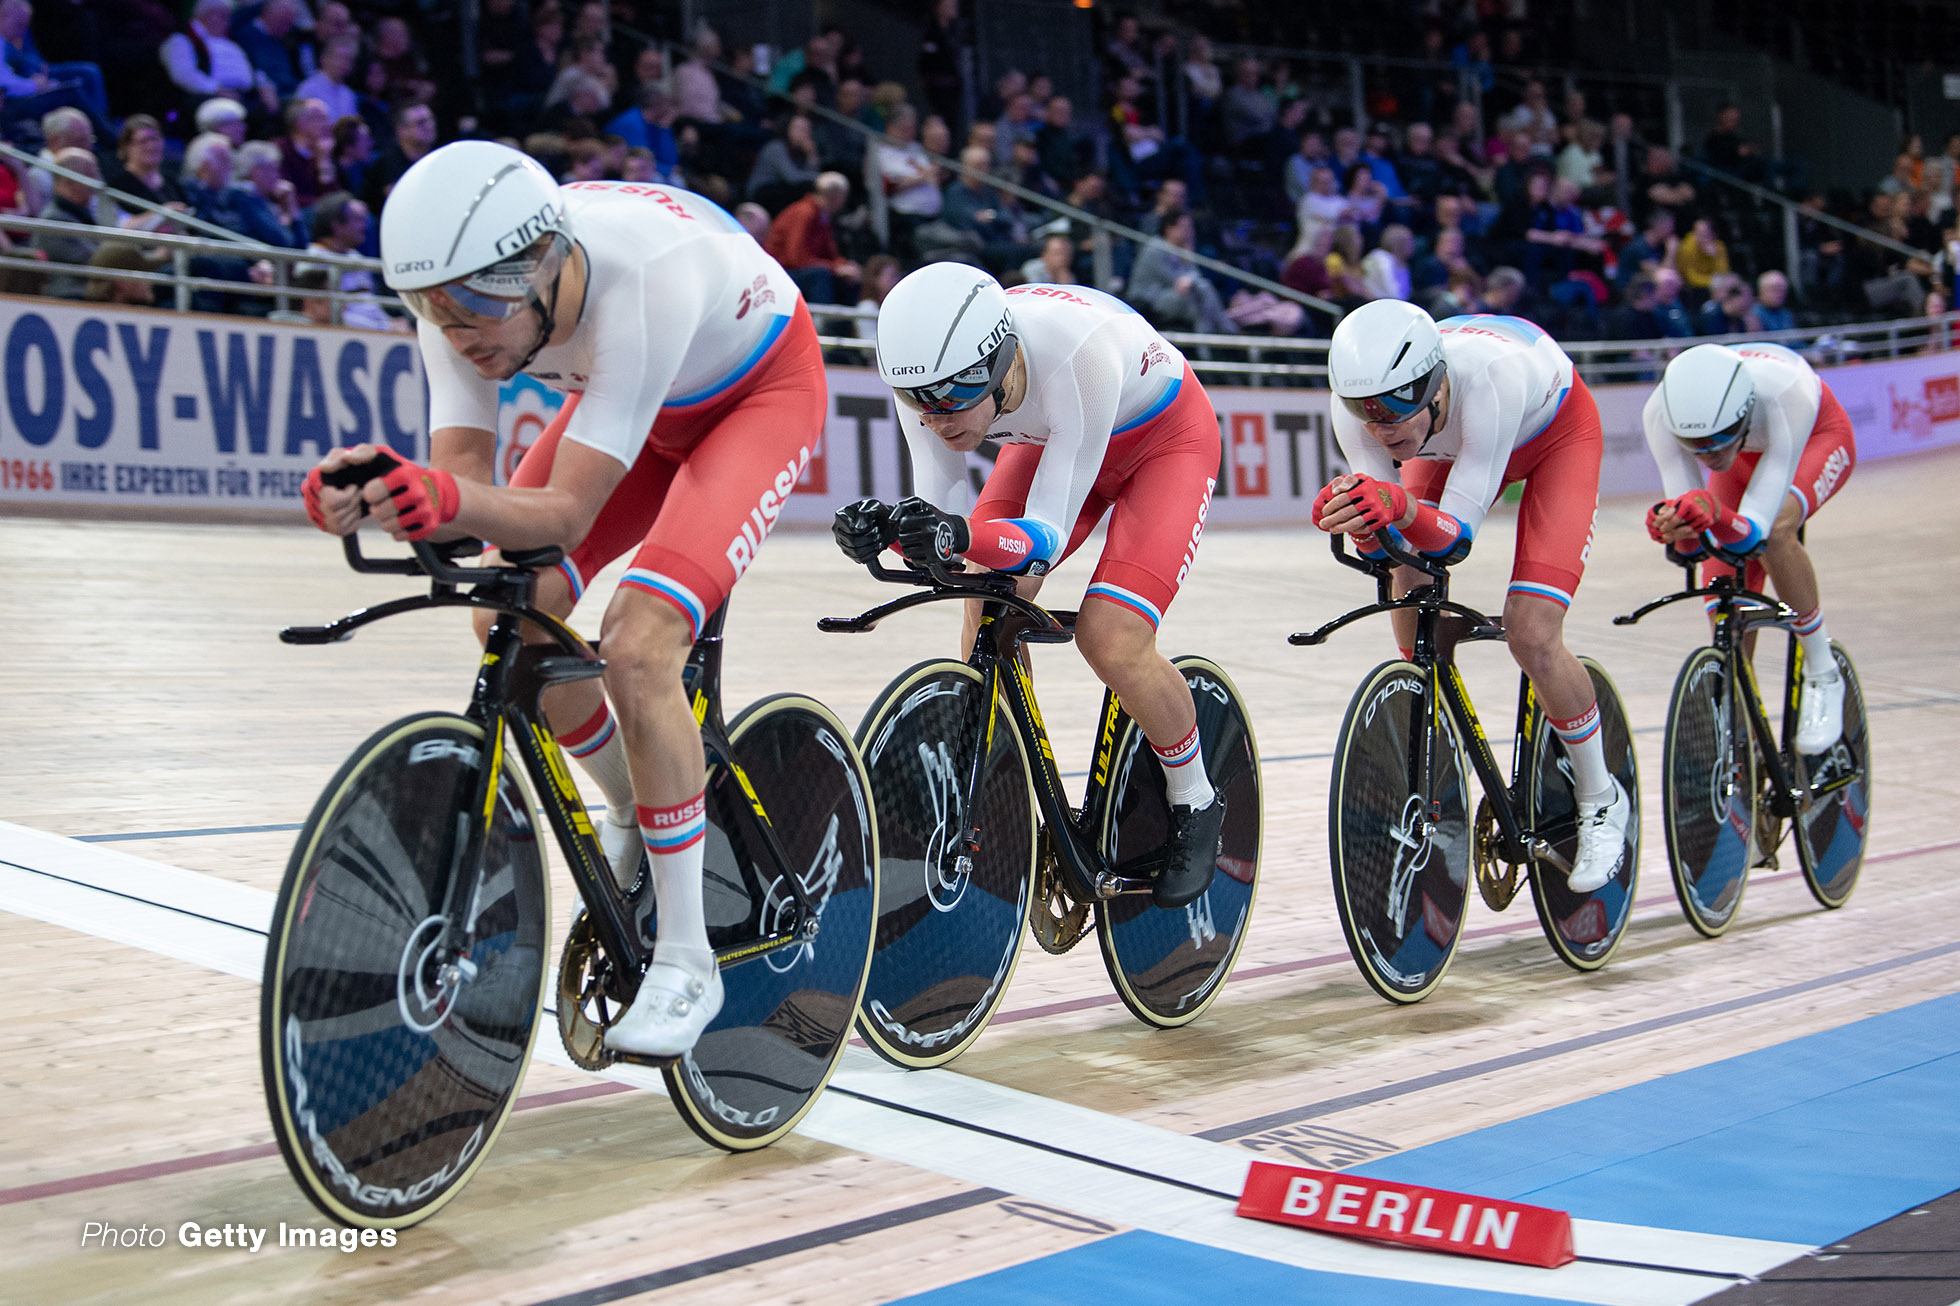 26 February 2020, Berlin: Cycling/track: World Championship, team pursuit, men, qualification: The team from Russia, consisting of Nikita Bersenev, Lev Gonov, Ivan Smirnov and Kirill Sveshnikov, rides on the track. Photo: Sebastian Gollnow/dpa (Photo by Sebastian Gollnow/picture alliance via Getty Images)